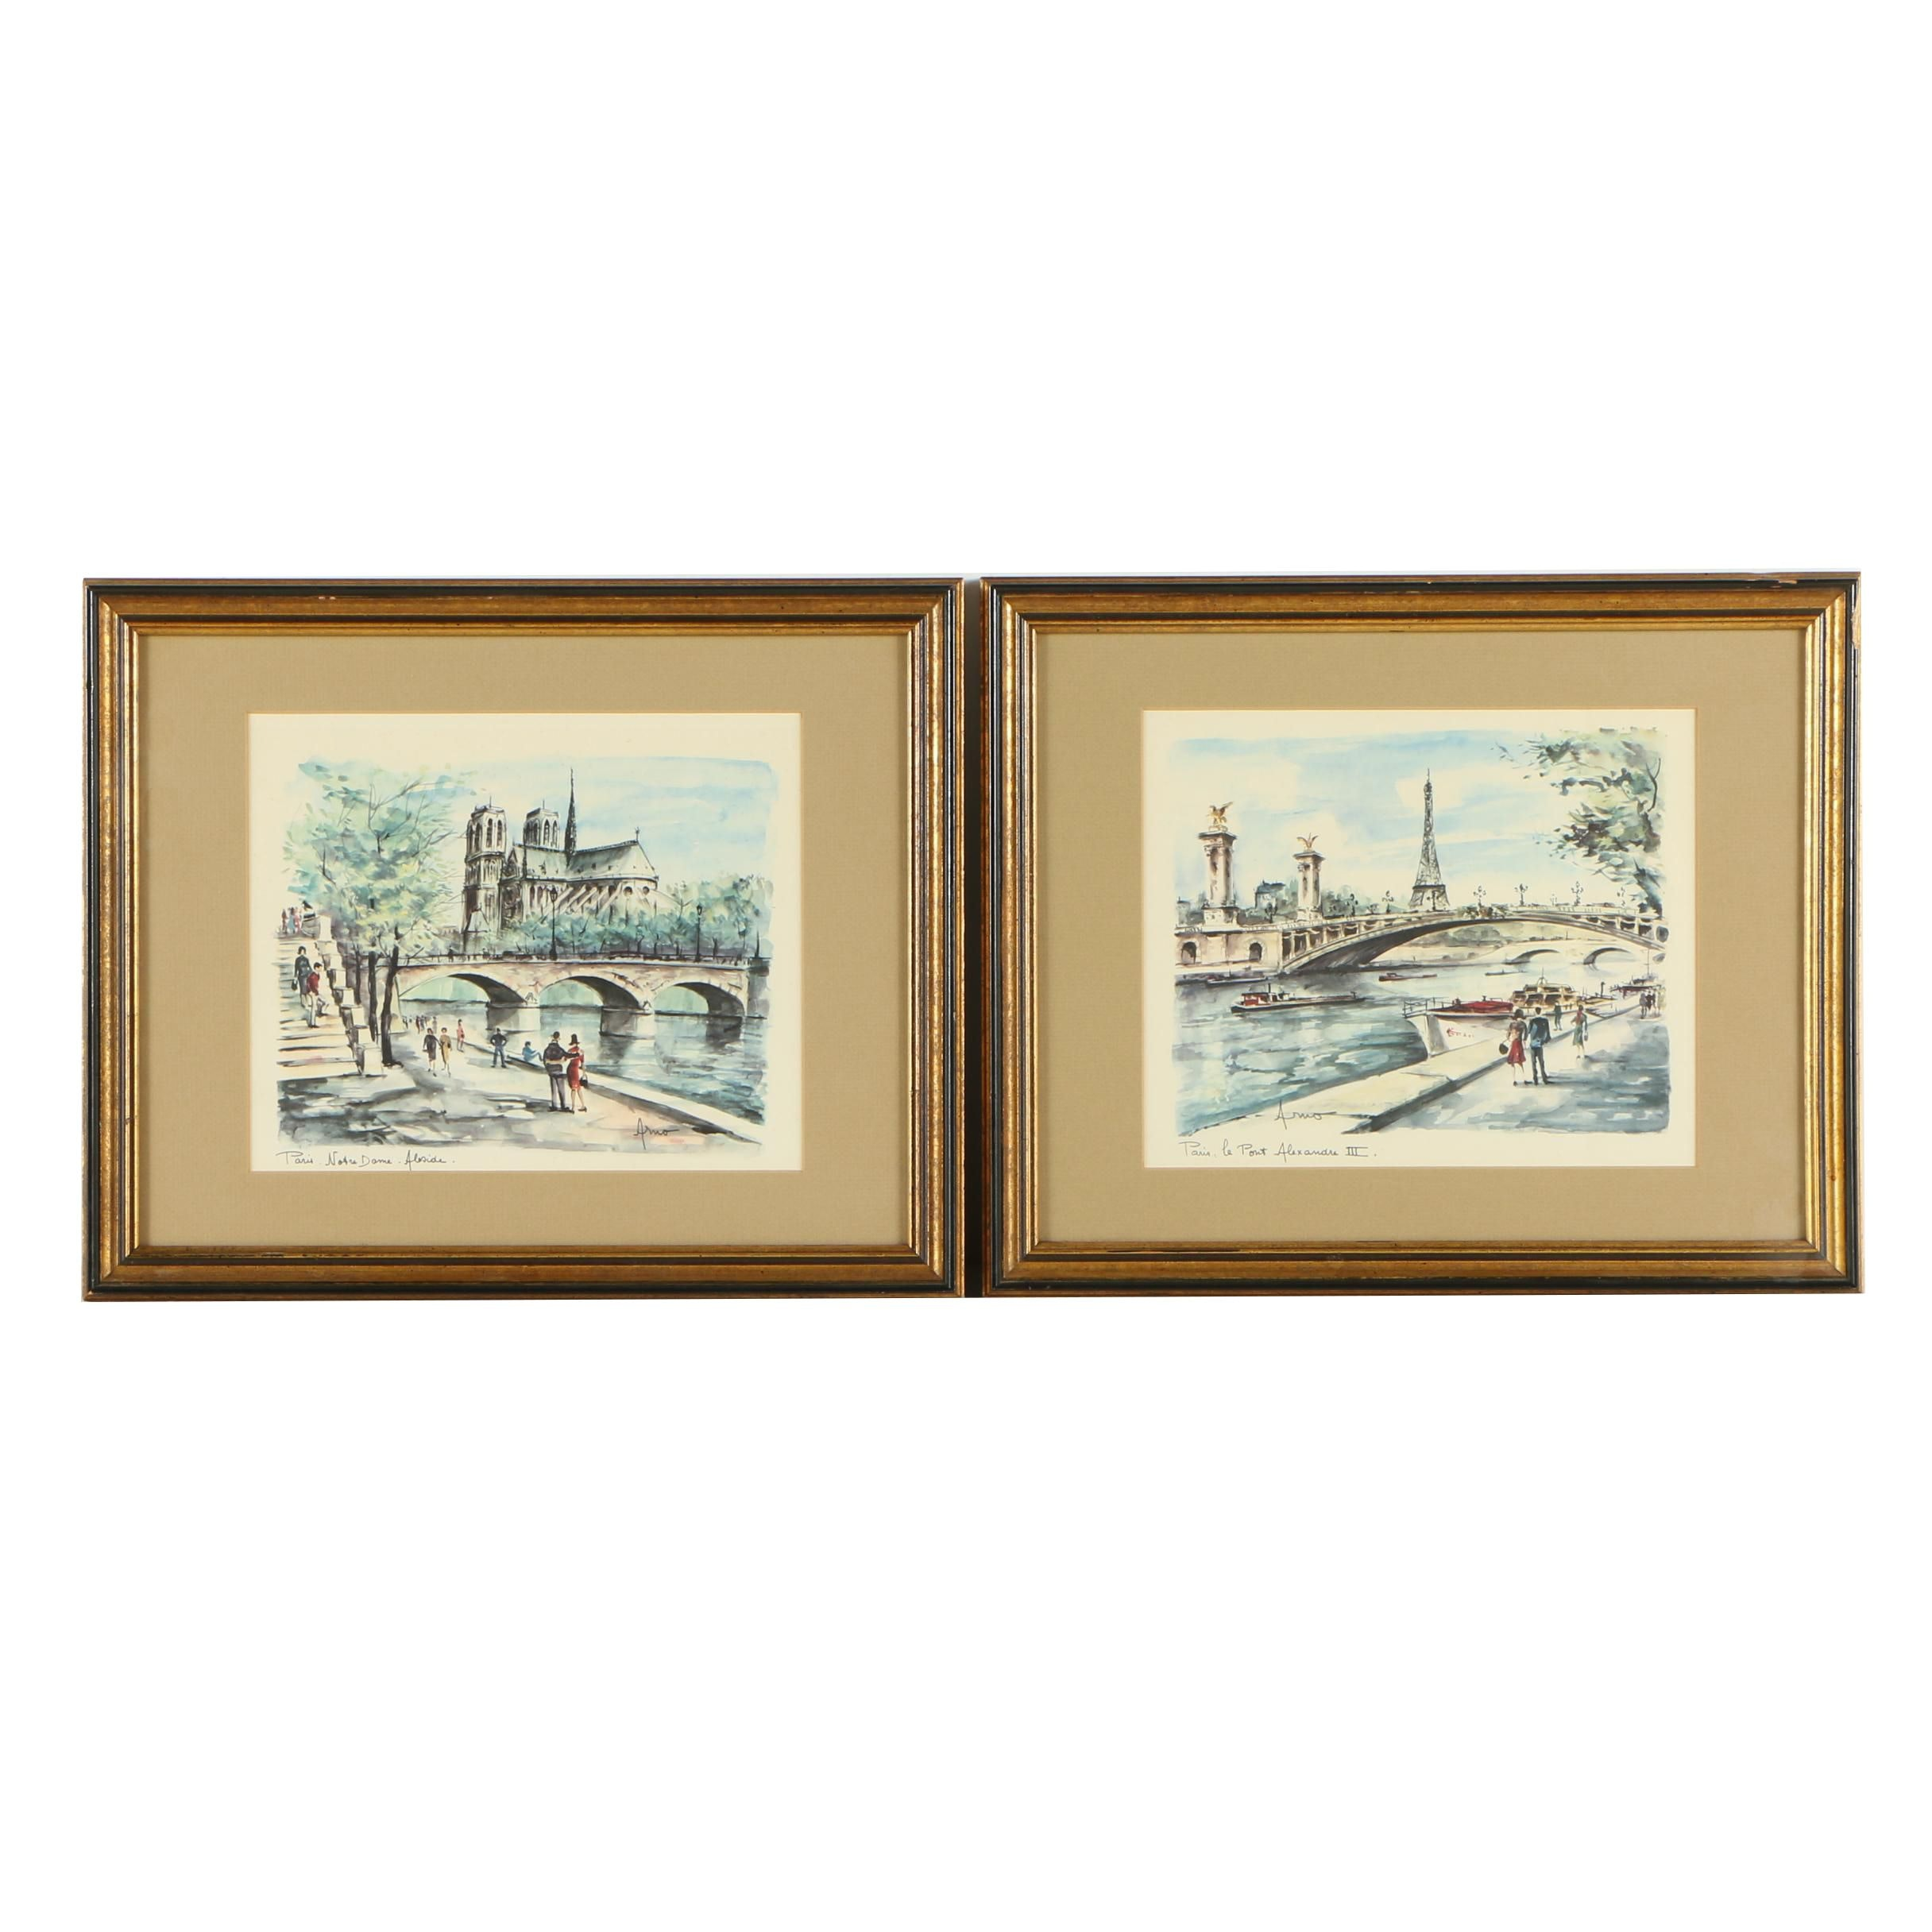 Offset Lithographs after Arno of Paris